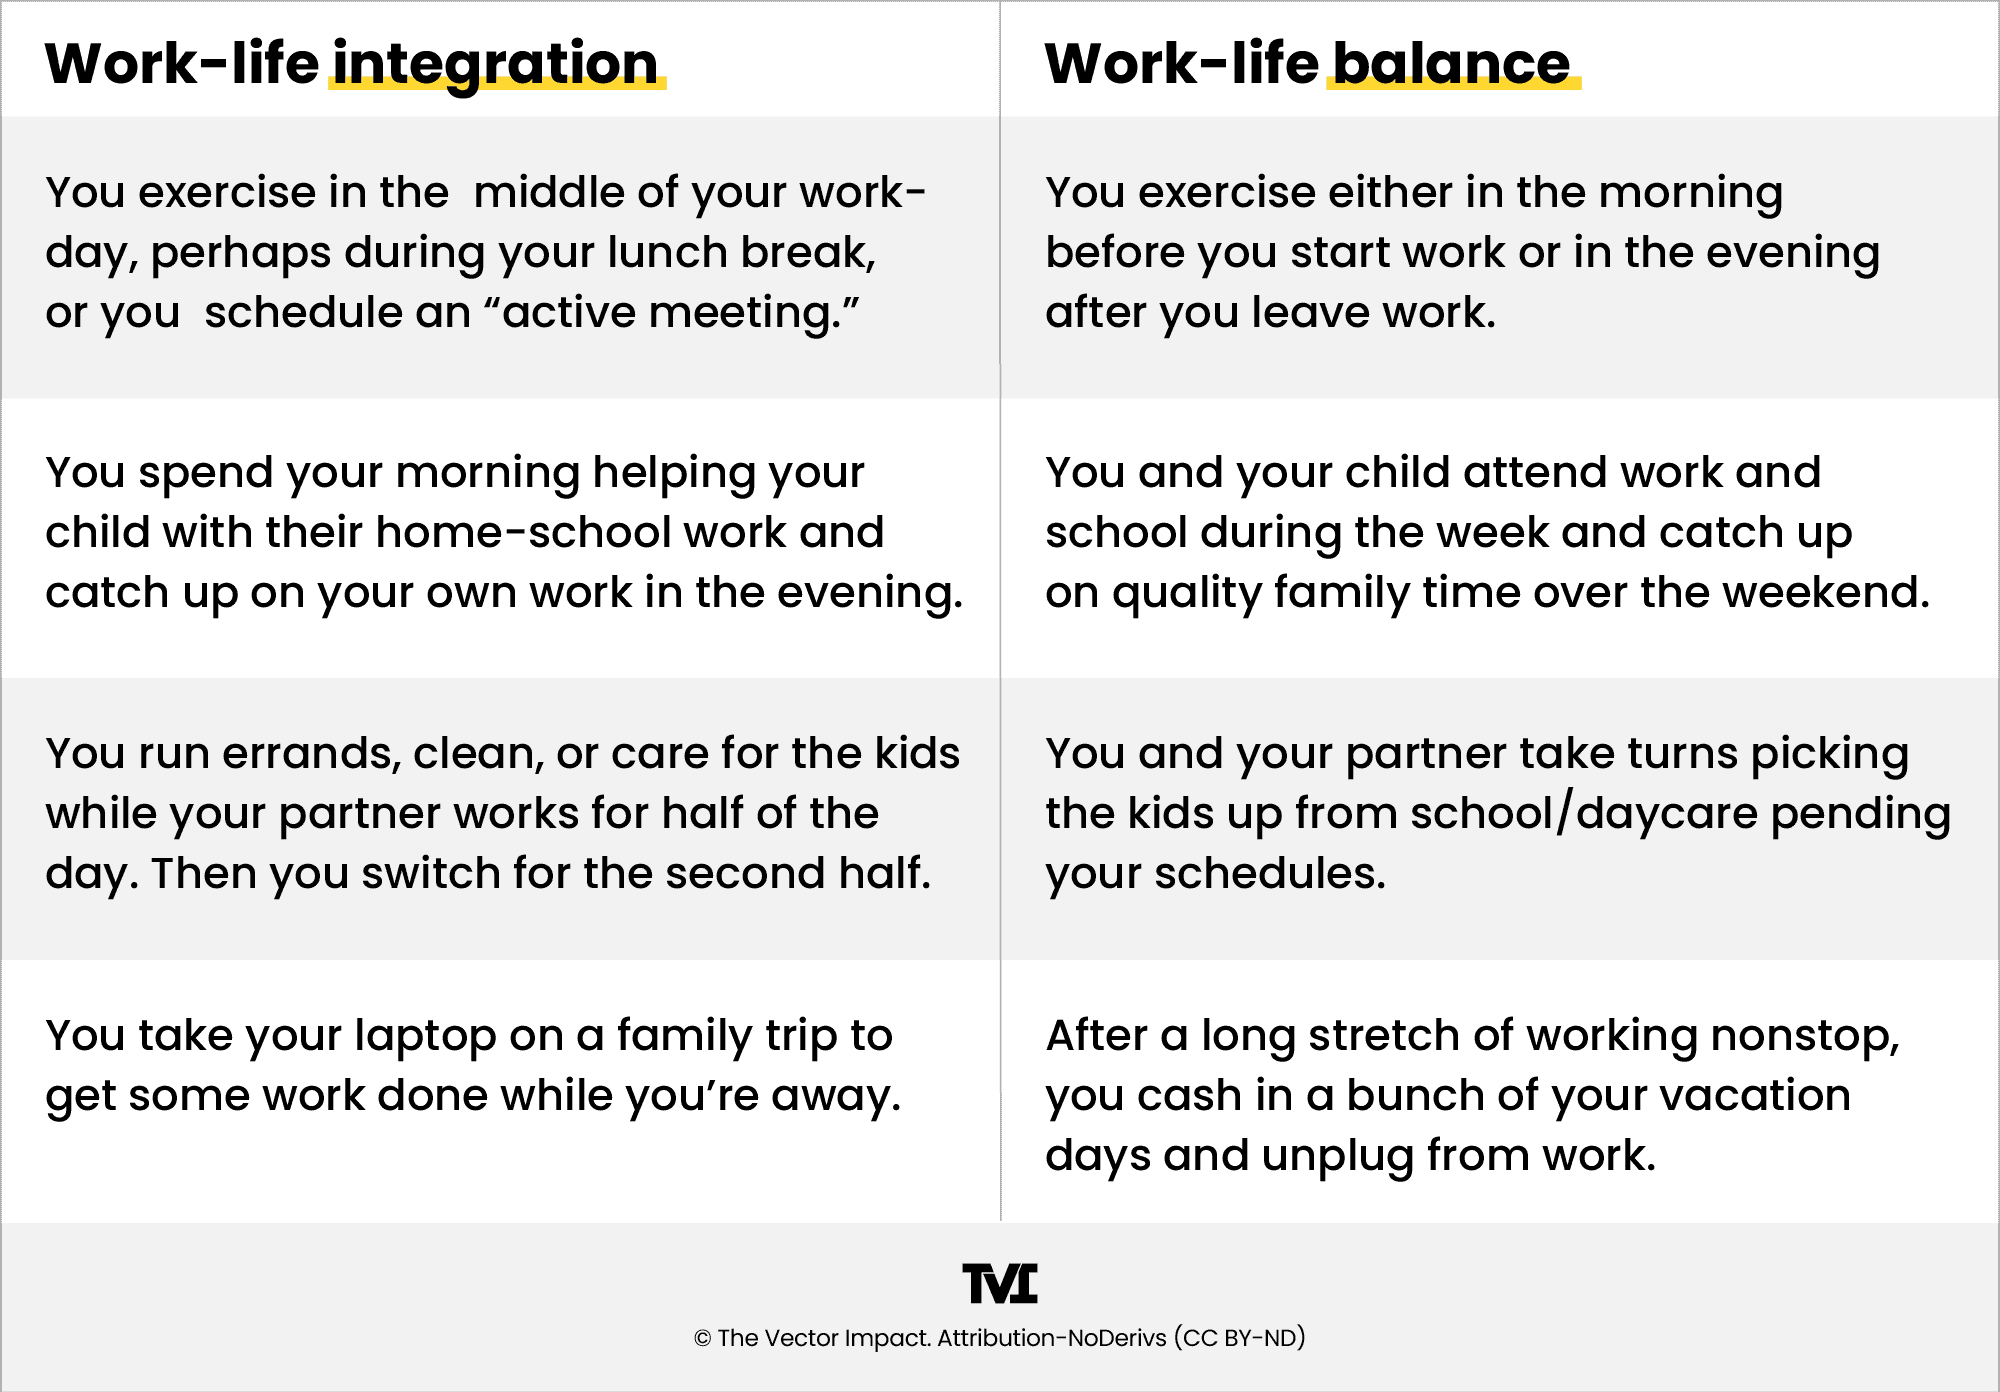 Examples of the difference between work-life integration and work-life balance.